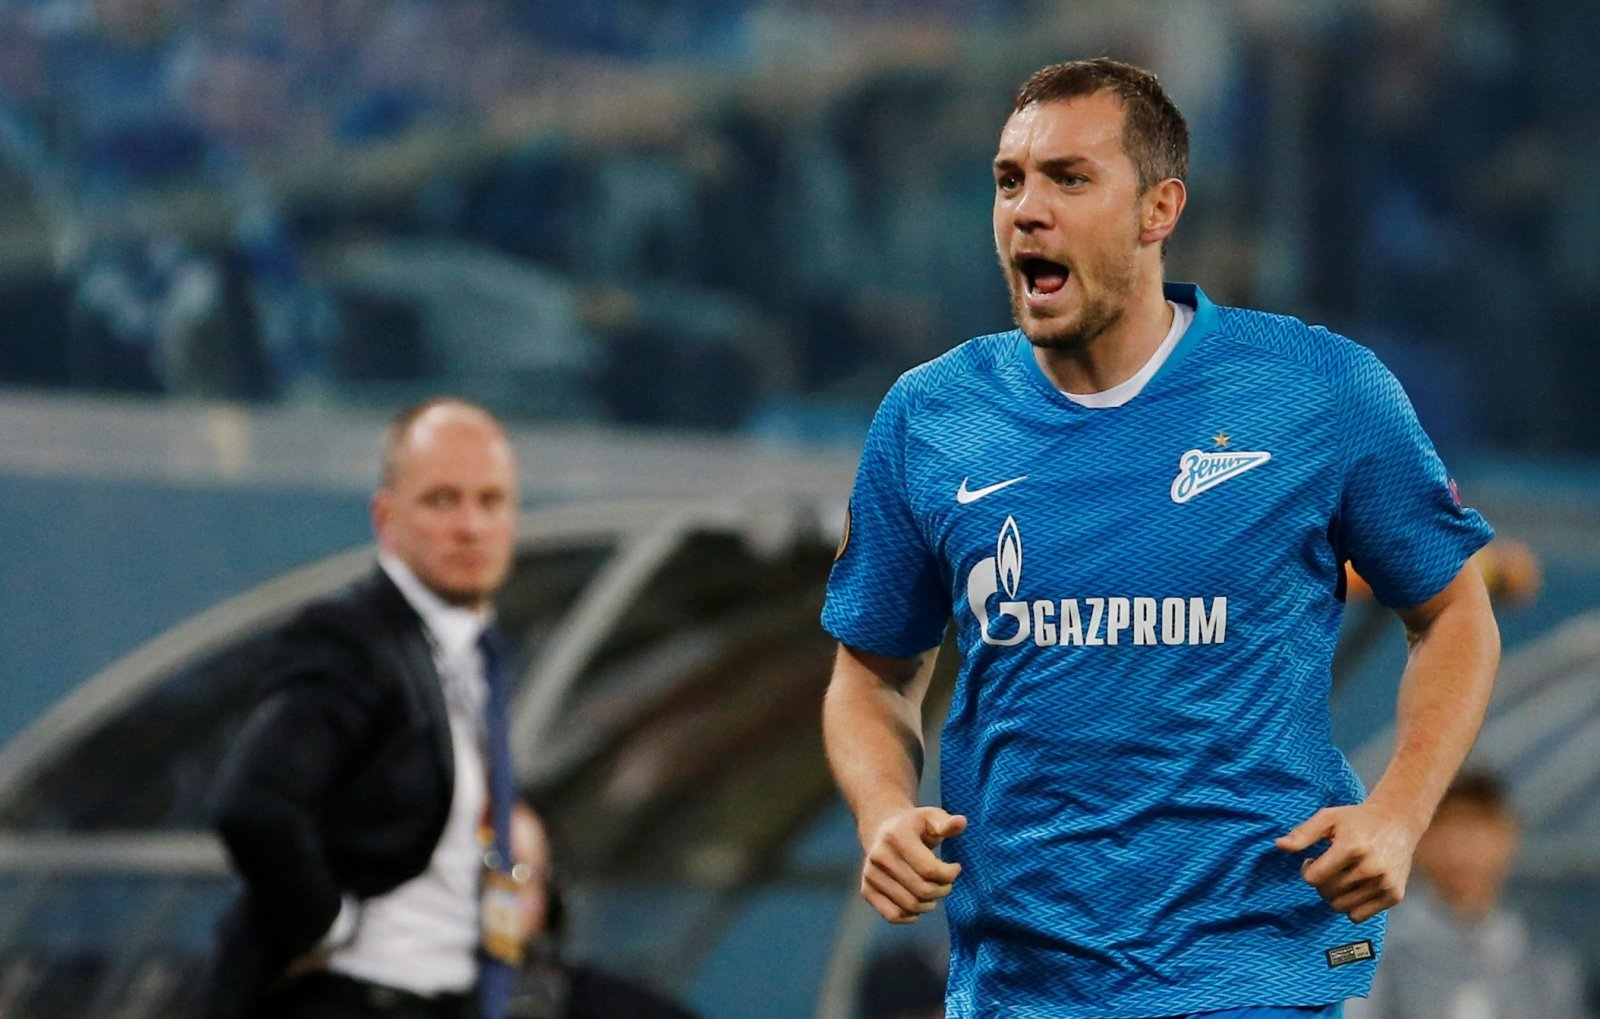 Artem Dzyuba would be a good option for Everton to consider